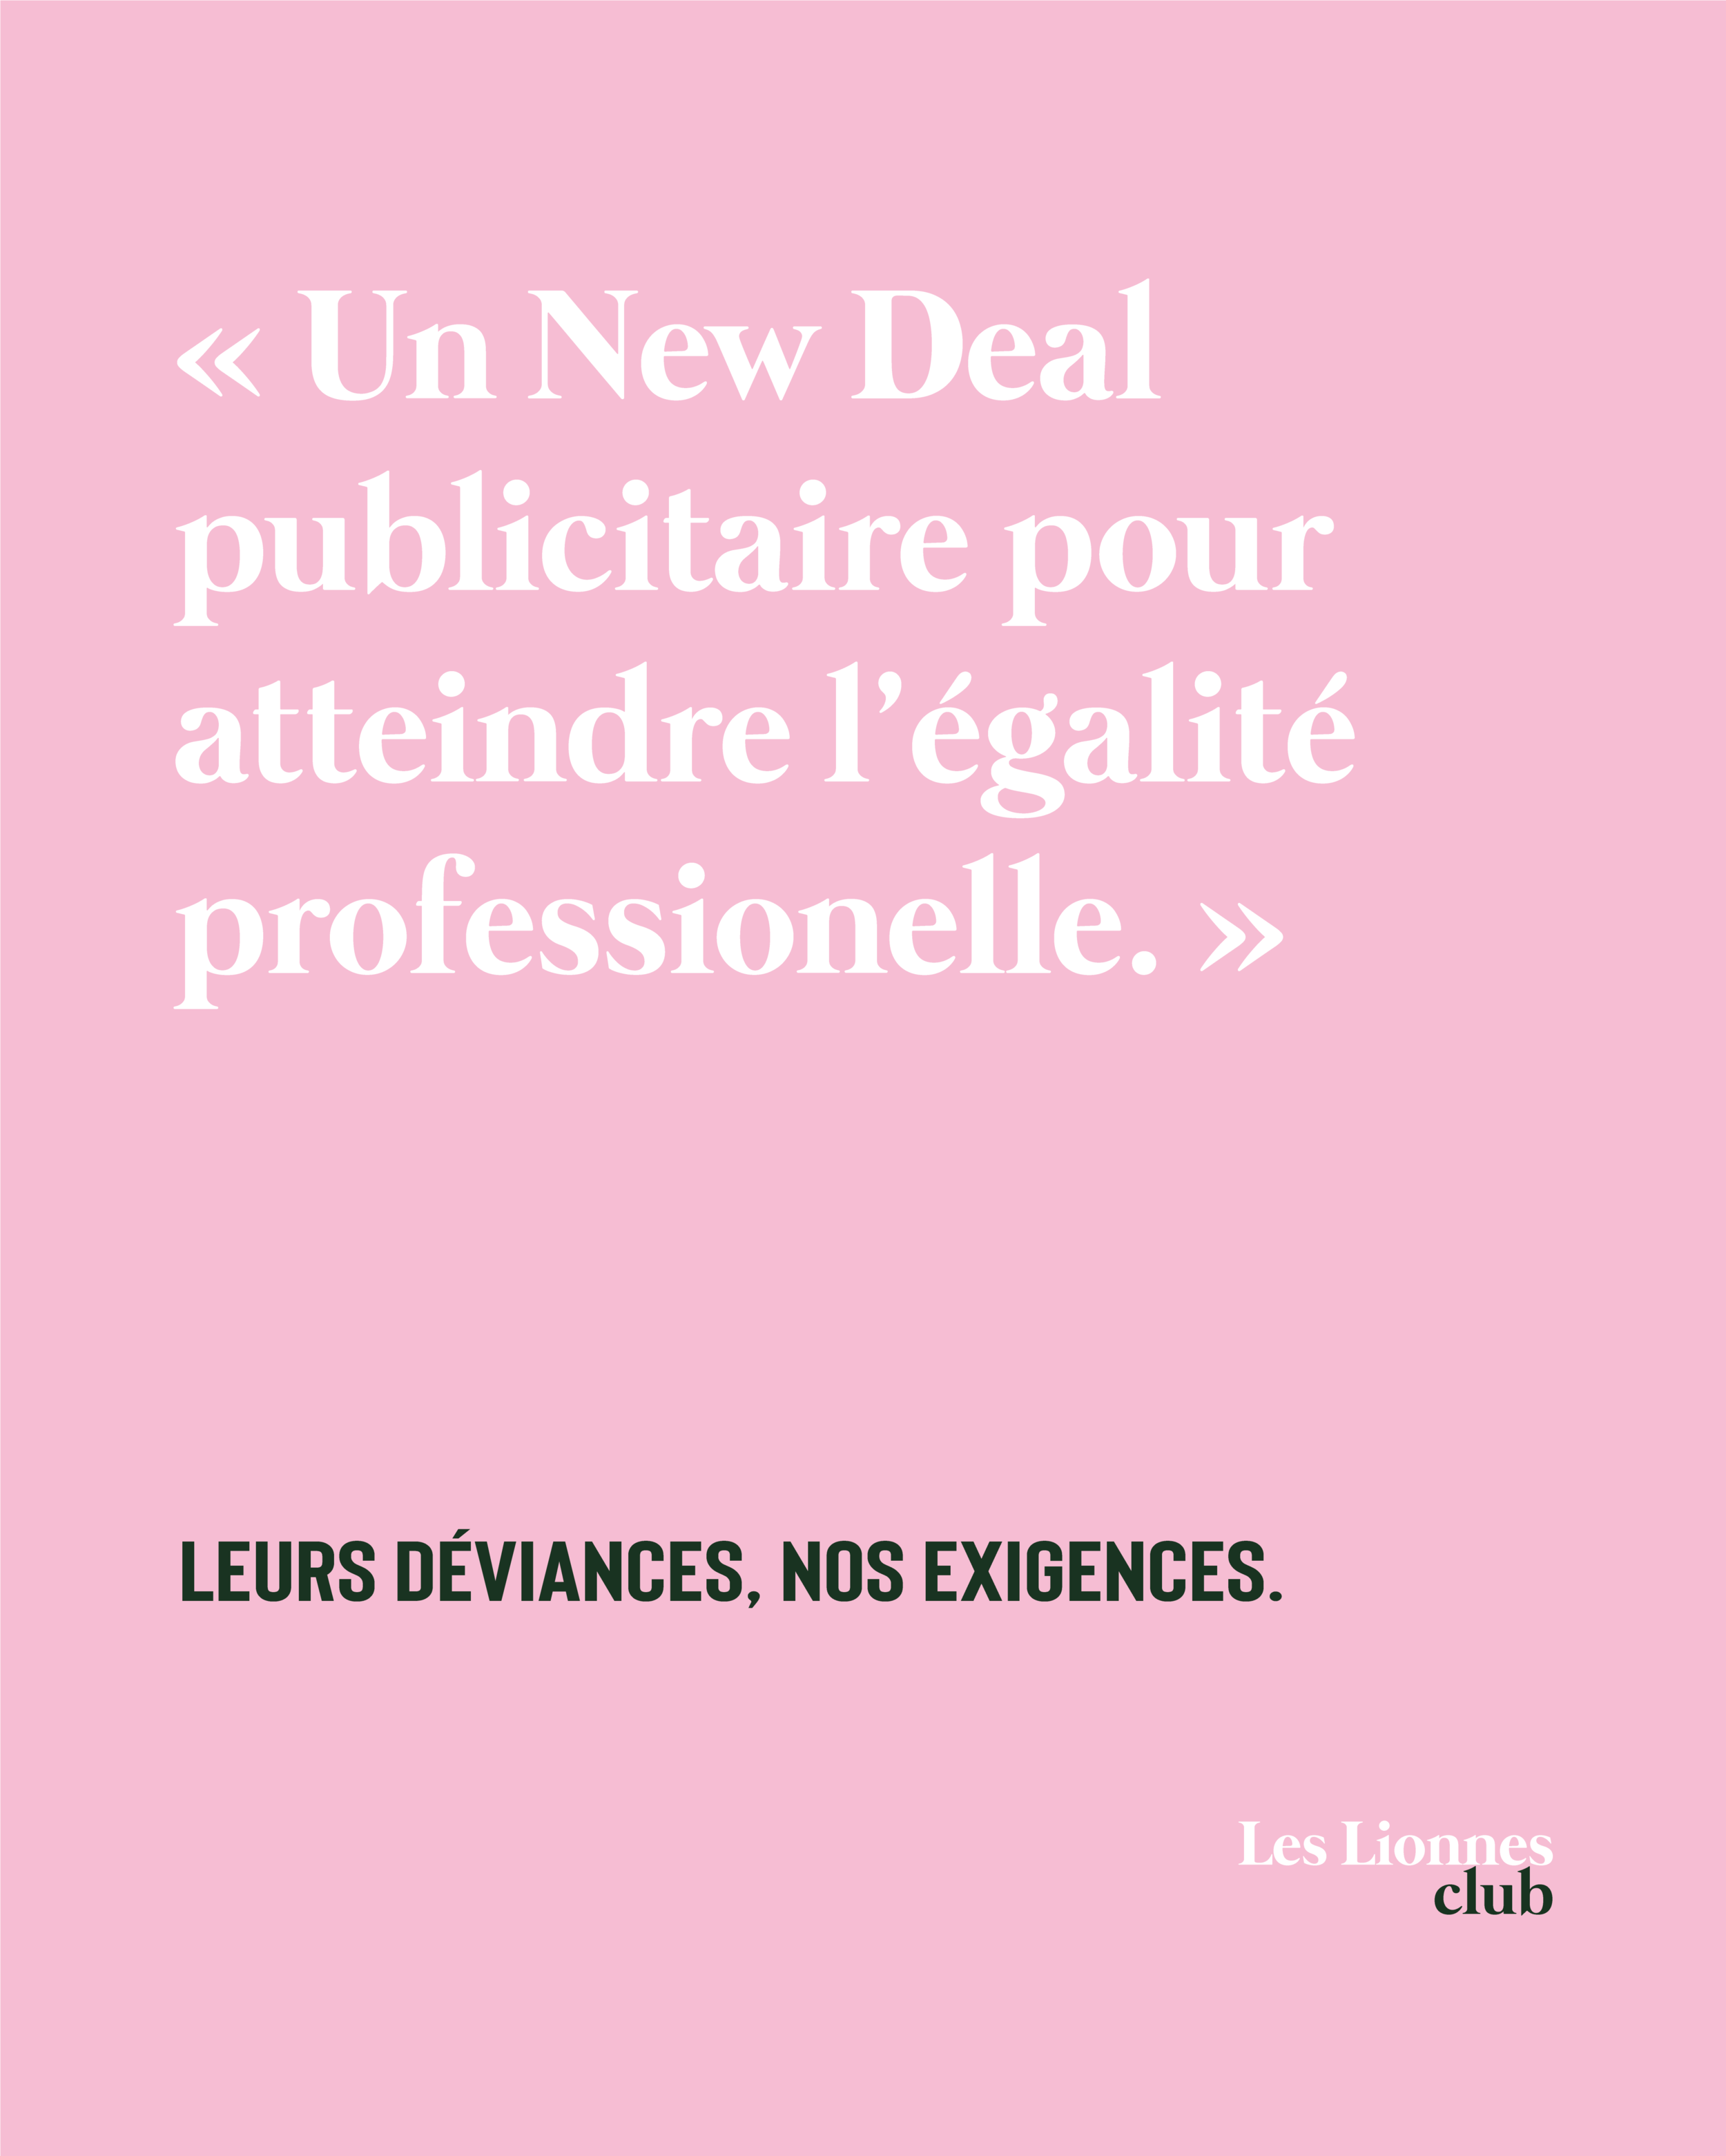 New Deal_fr INSTA.png